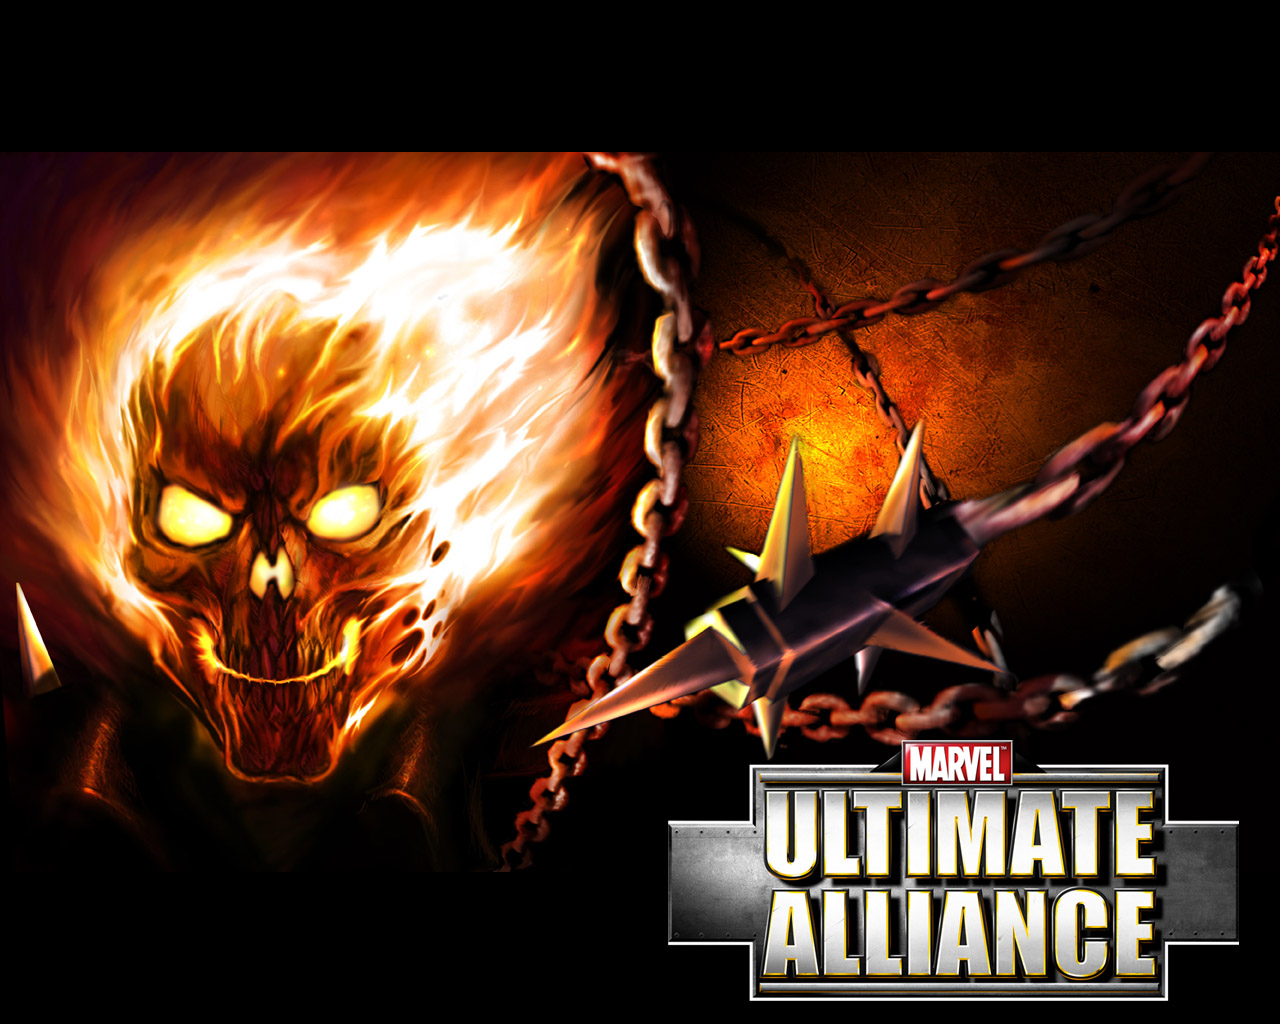 Ghost Rider Wallpaper 1280x1024 Ghost Rider Marvel Comics 1280x1024